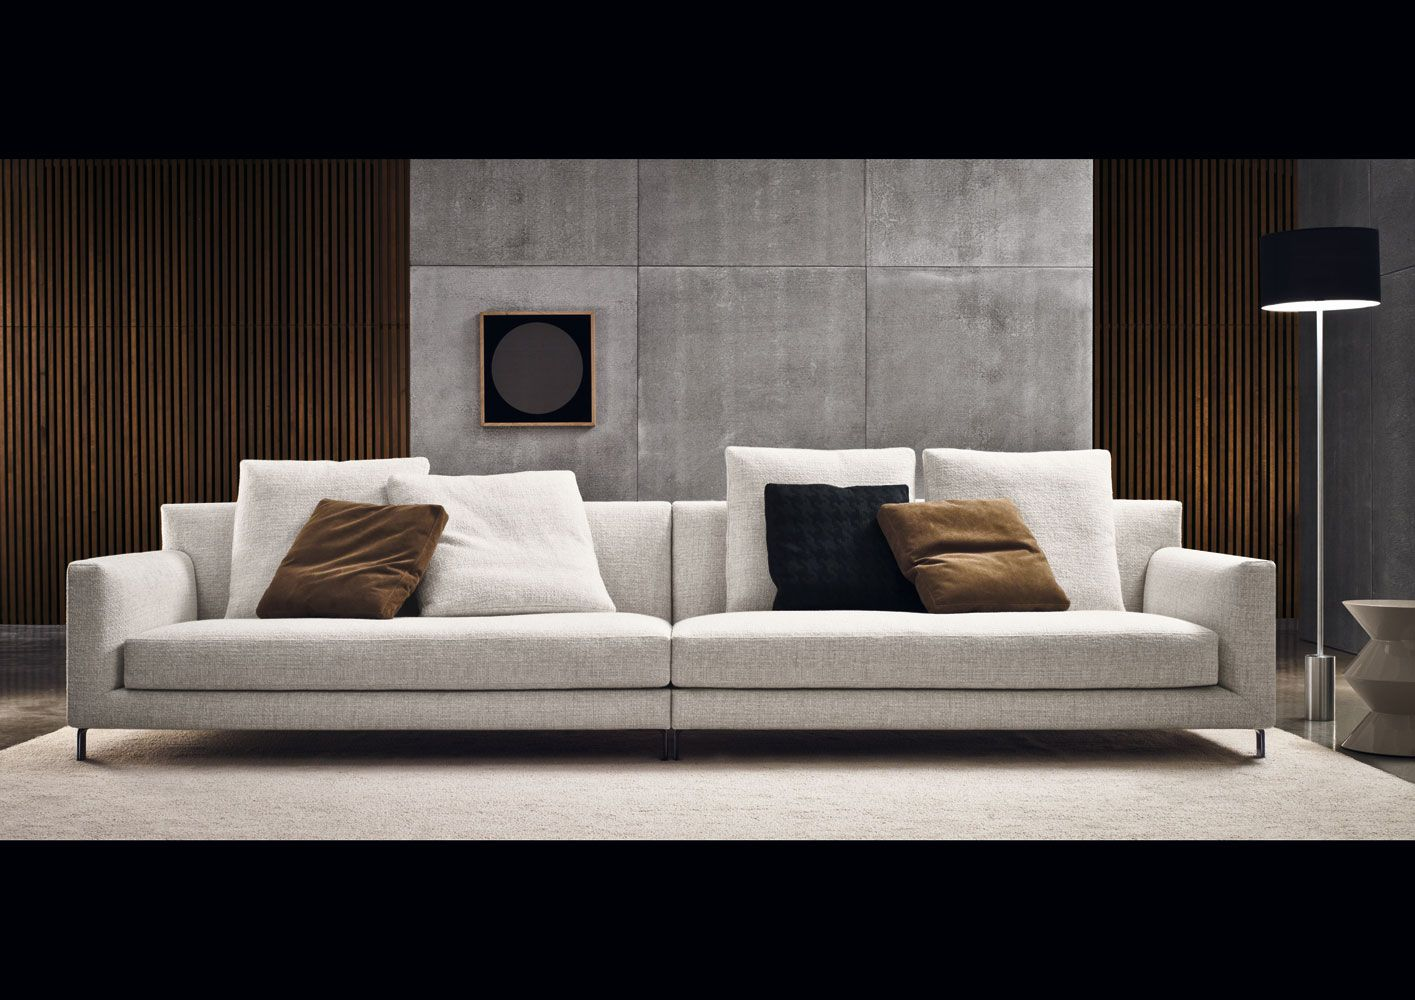 allen sofa designed by rodolfo dordoni manufactured by. Black Bedroom Furniture Sets. Home Design Ideas